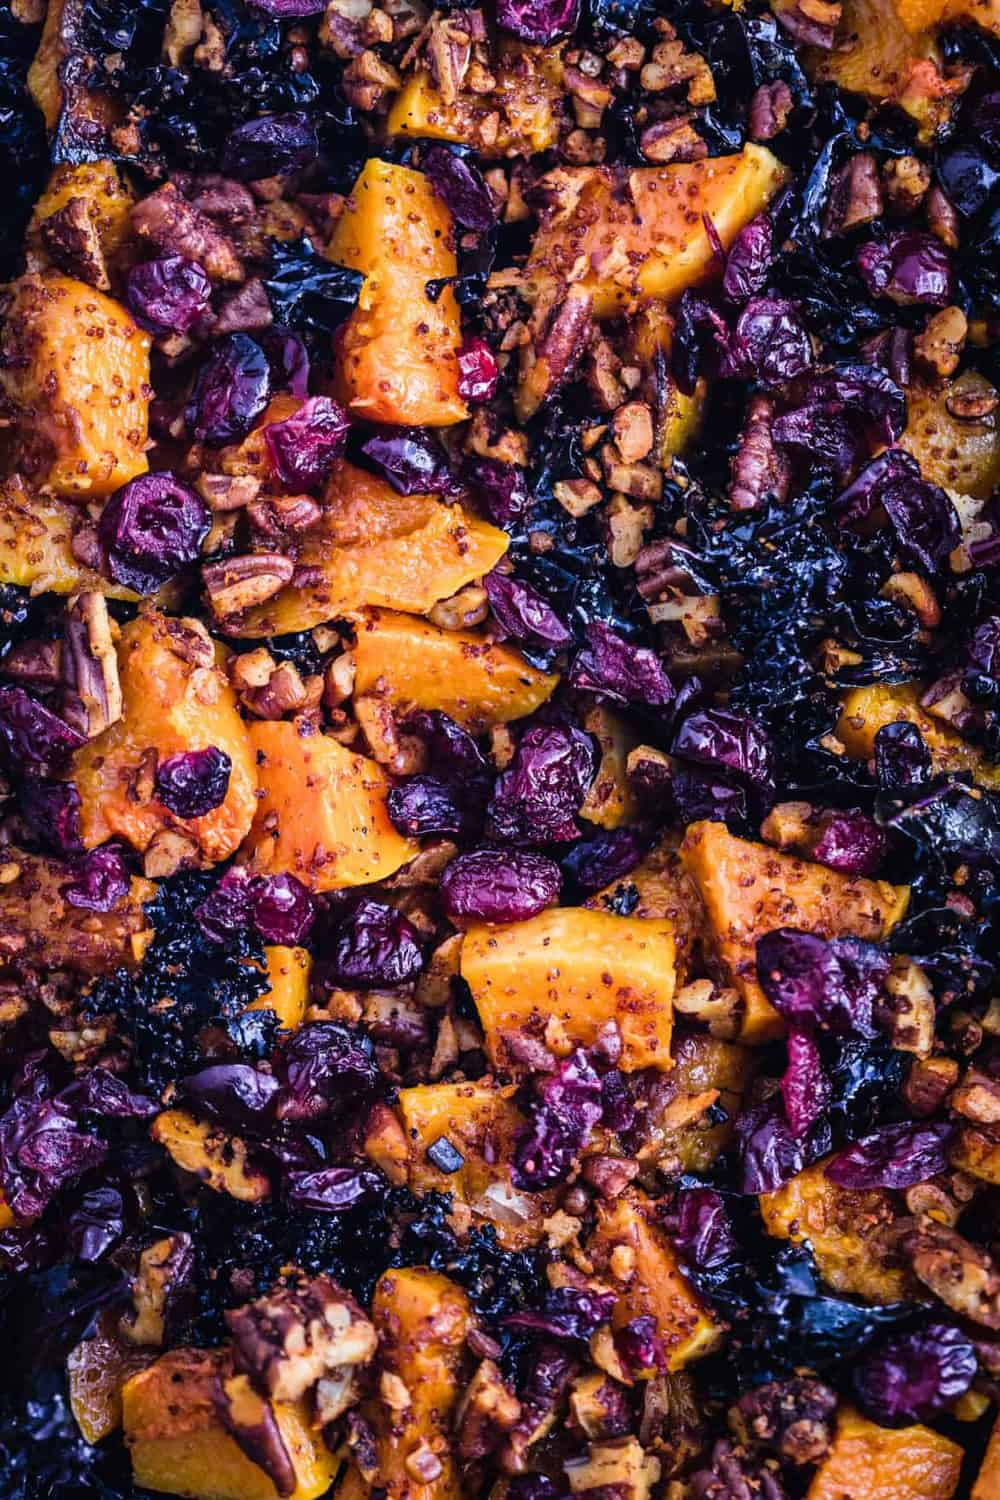 The kale, roasted squash, spiced pecans and dried cranberries.